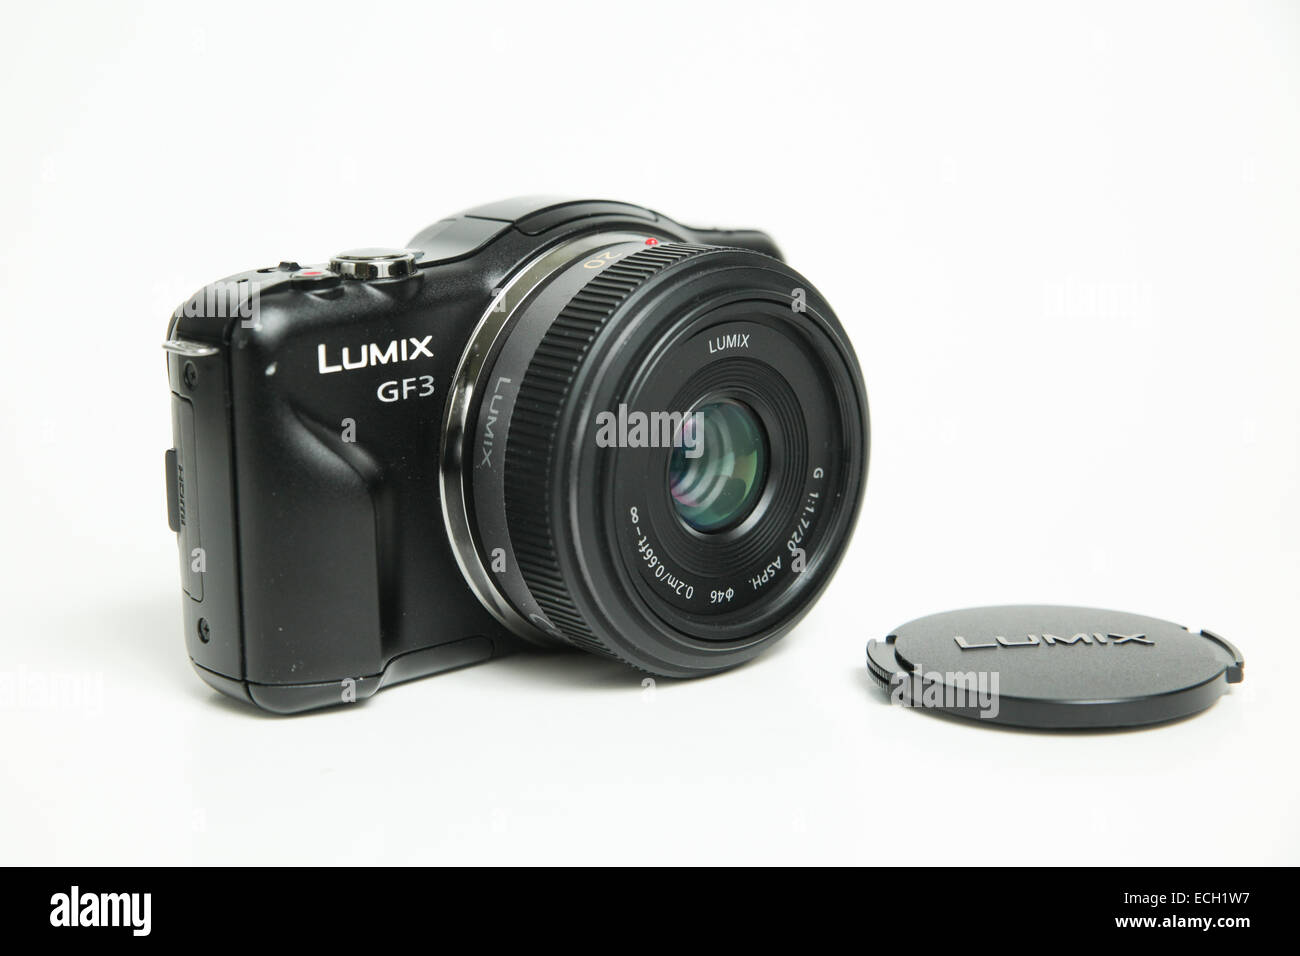 Panasonic micro four thirds camera GF3 - Stock Image